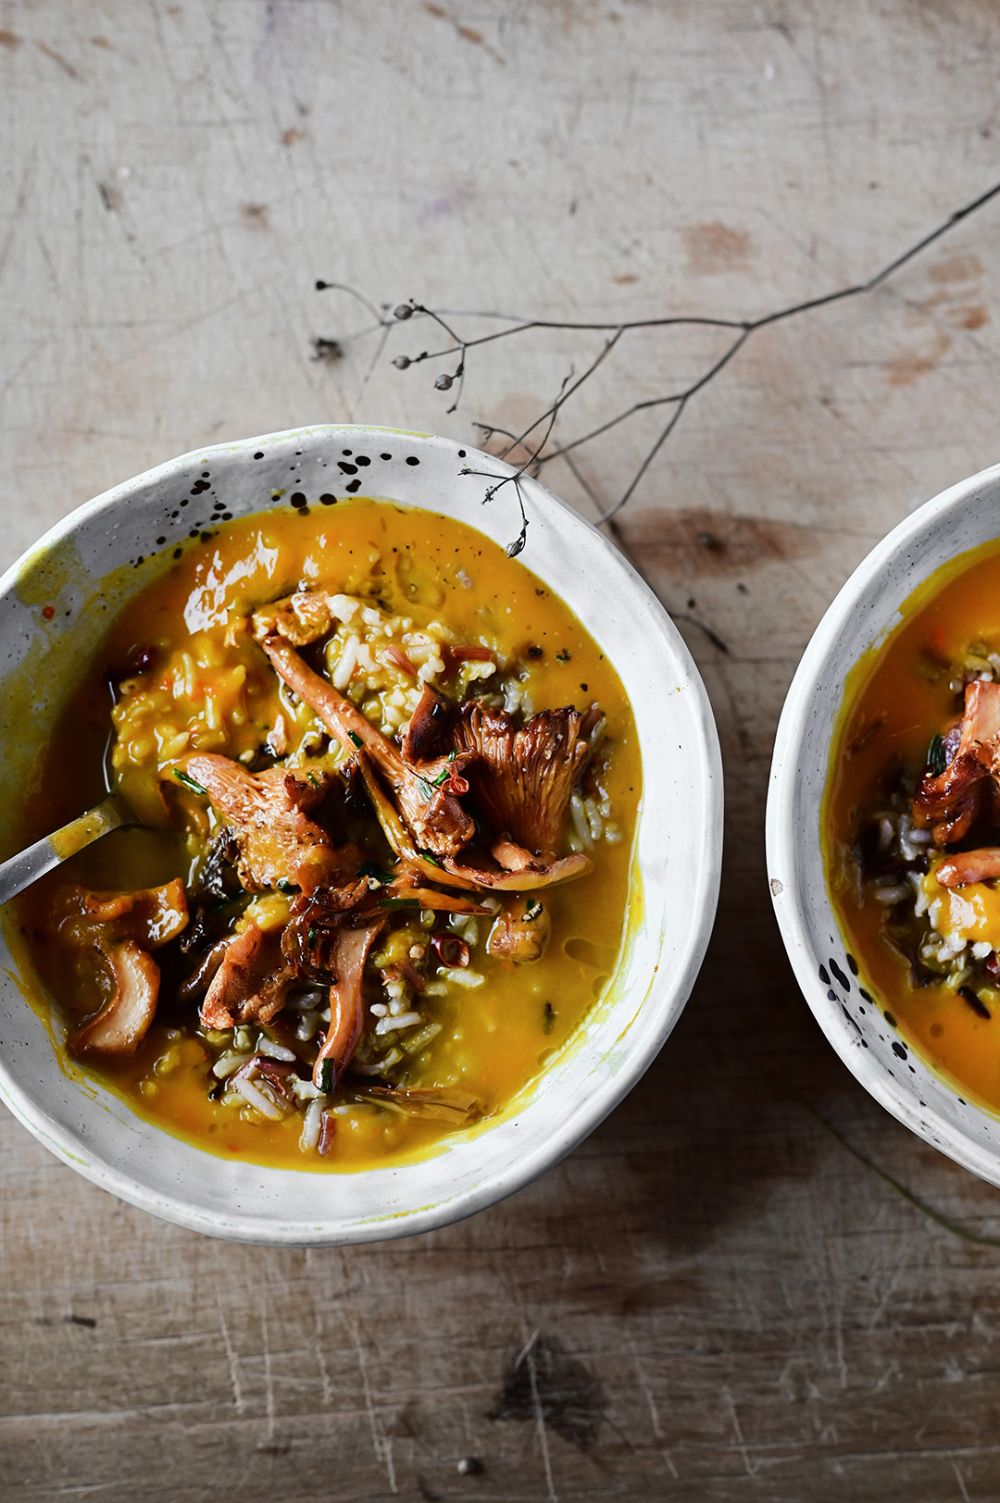 Roasted pumpkin soup with wild rice and miso mushrooms